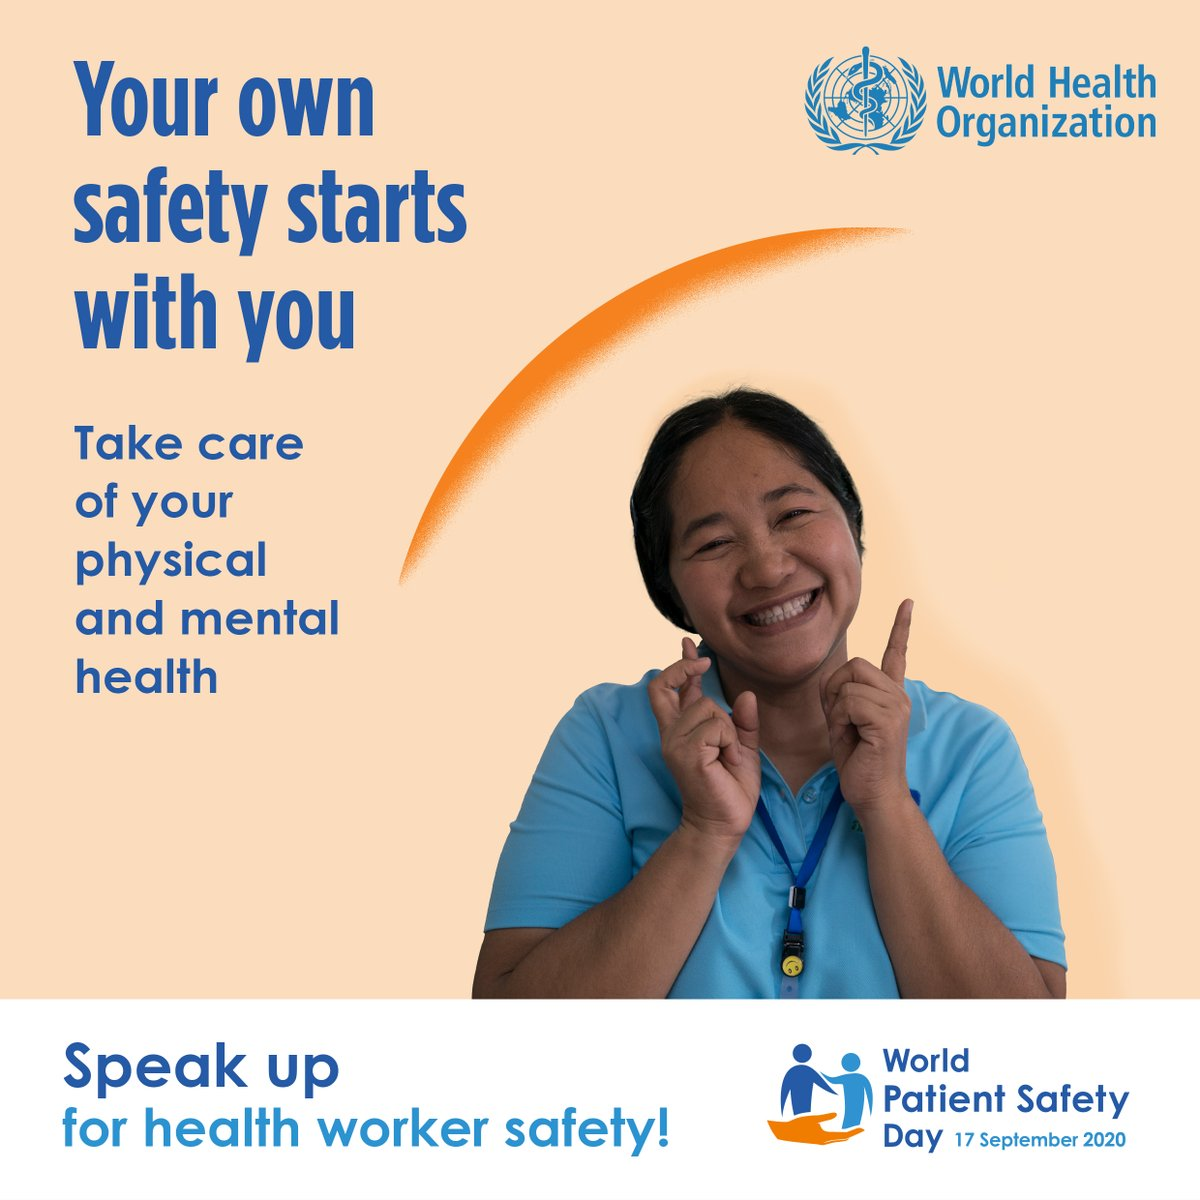 #WPSD The ongoing COVID-19 pandemic has exerted unprecedented pressure on health systems and health workers. Safety of health workers has a significant impact on safety of patients. Make patient safety your priority. Speak up for patient safety. https://t.co/DXJLGsvHjp https://t.co/mjUtqSdxT8